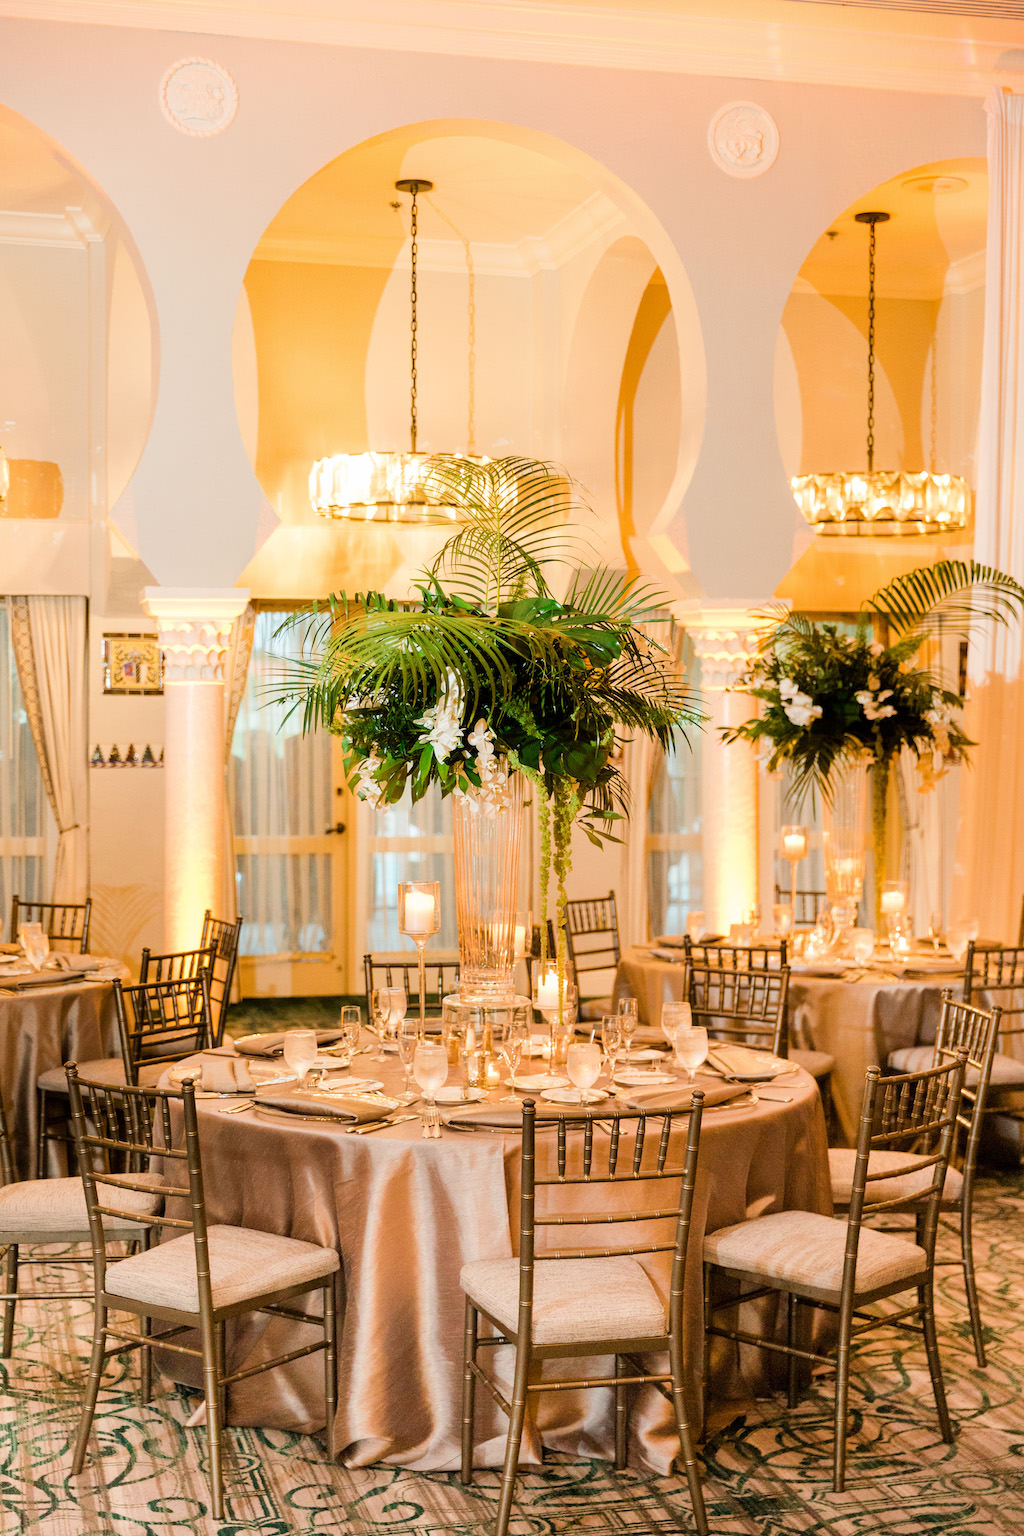 Tropical Inspired, Modern Wedding Reception Decor, Tall Centerpieces with Green Monstera Leaves, Large Palm Fronds, White Orchid Flowers, Round Tables with Silver Linens, Chiavari Chairs | Grand Ballroom of The Vinoy Renaissance St. Petersburg Resort & Golf Club | Over the Top Rental Linens | Tampa Bay Florist Bruce Wayne Florals | Florida Luxury Wedding Planner Parties A'La Carte